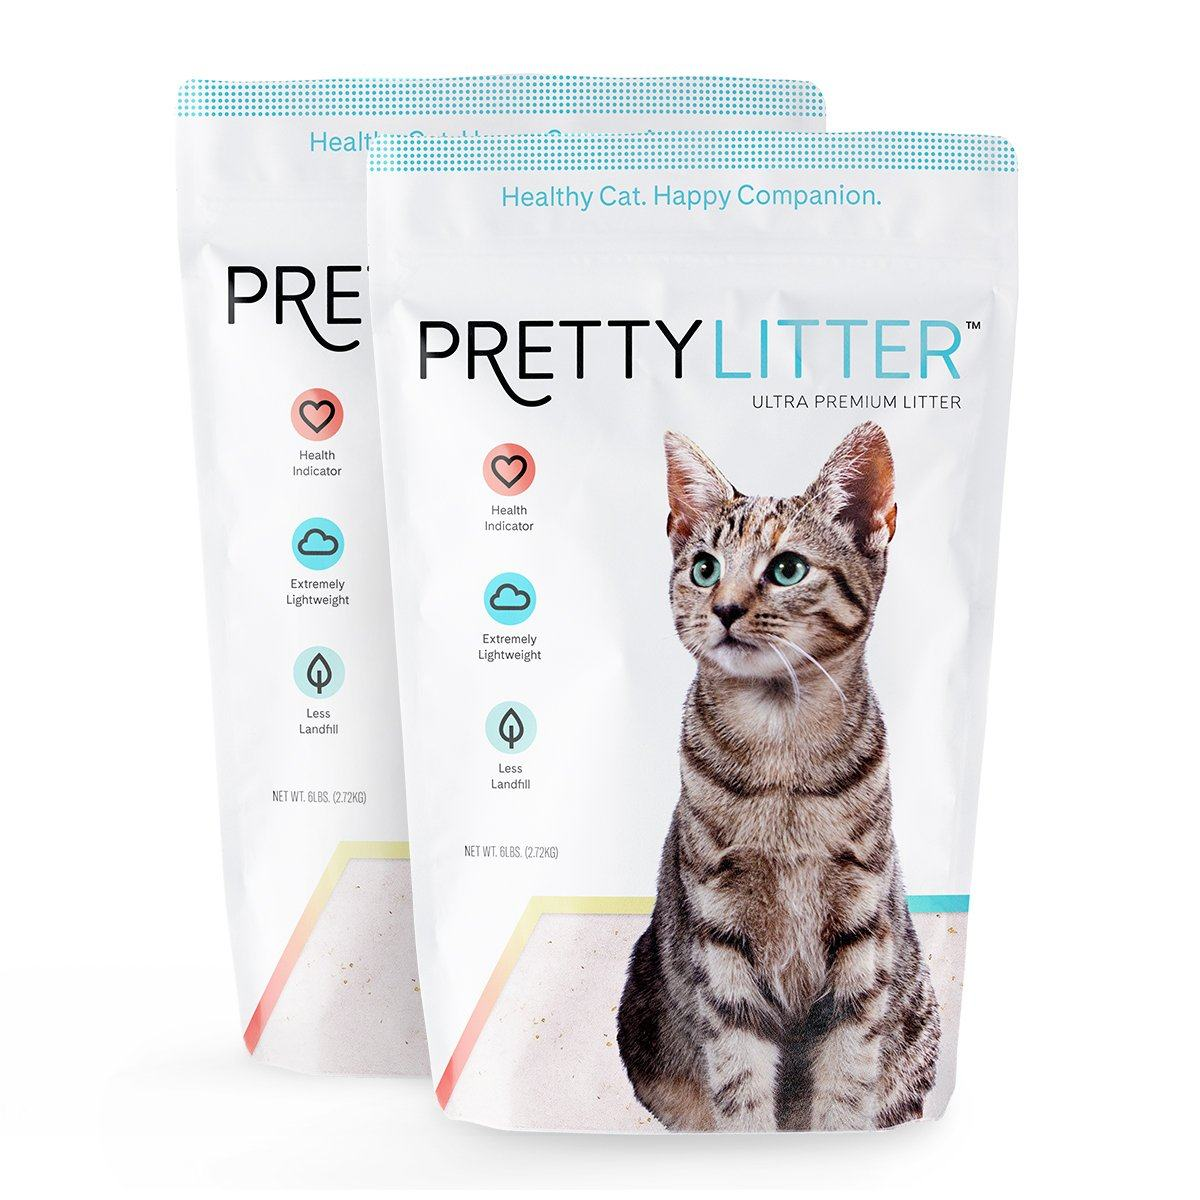 Two Bags of PrettyLitter™ Health Monitoring Cat Litter